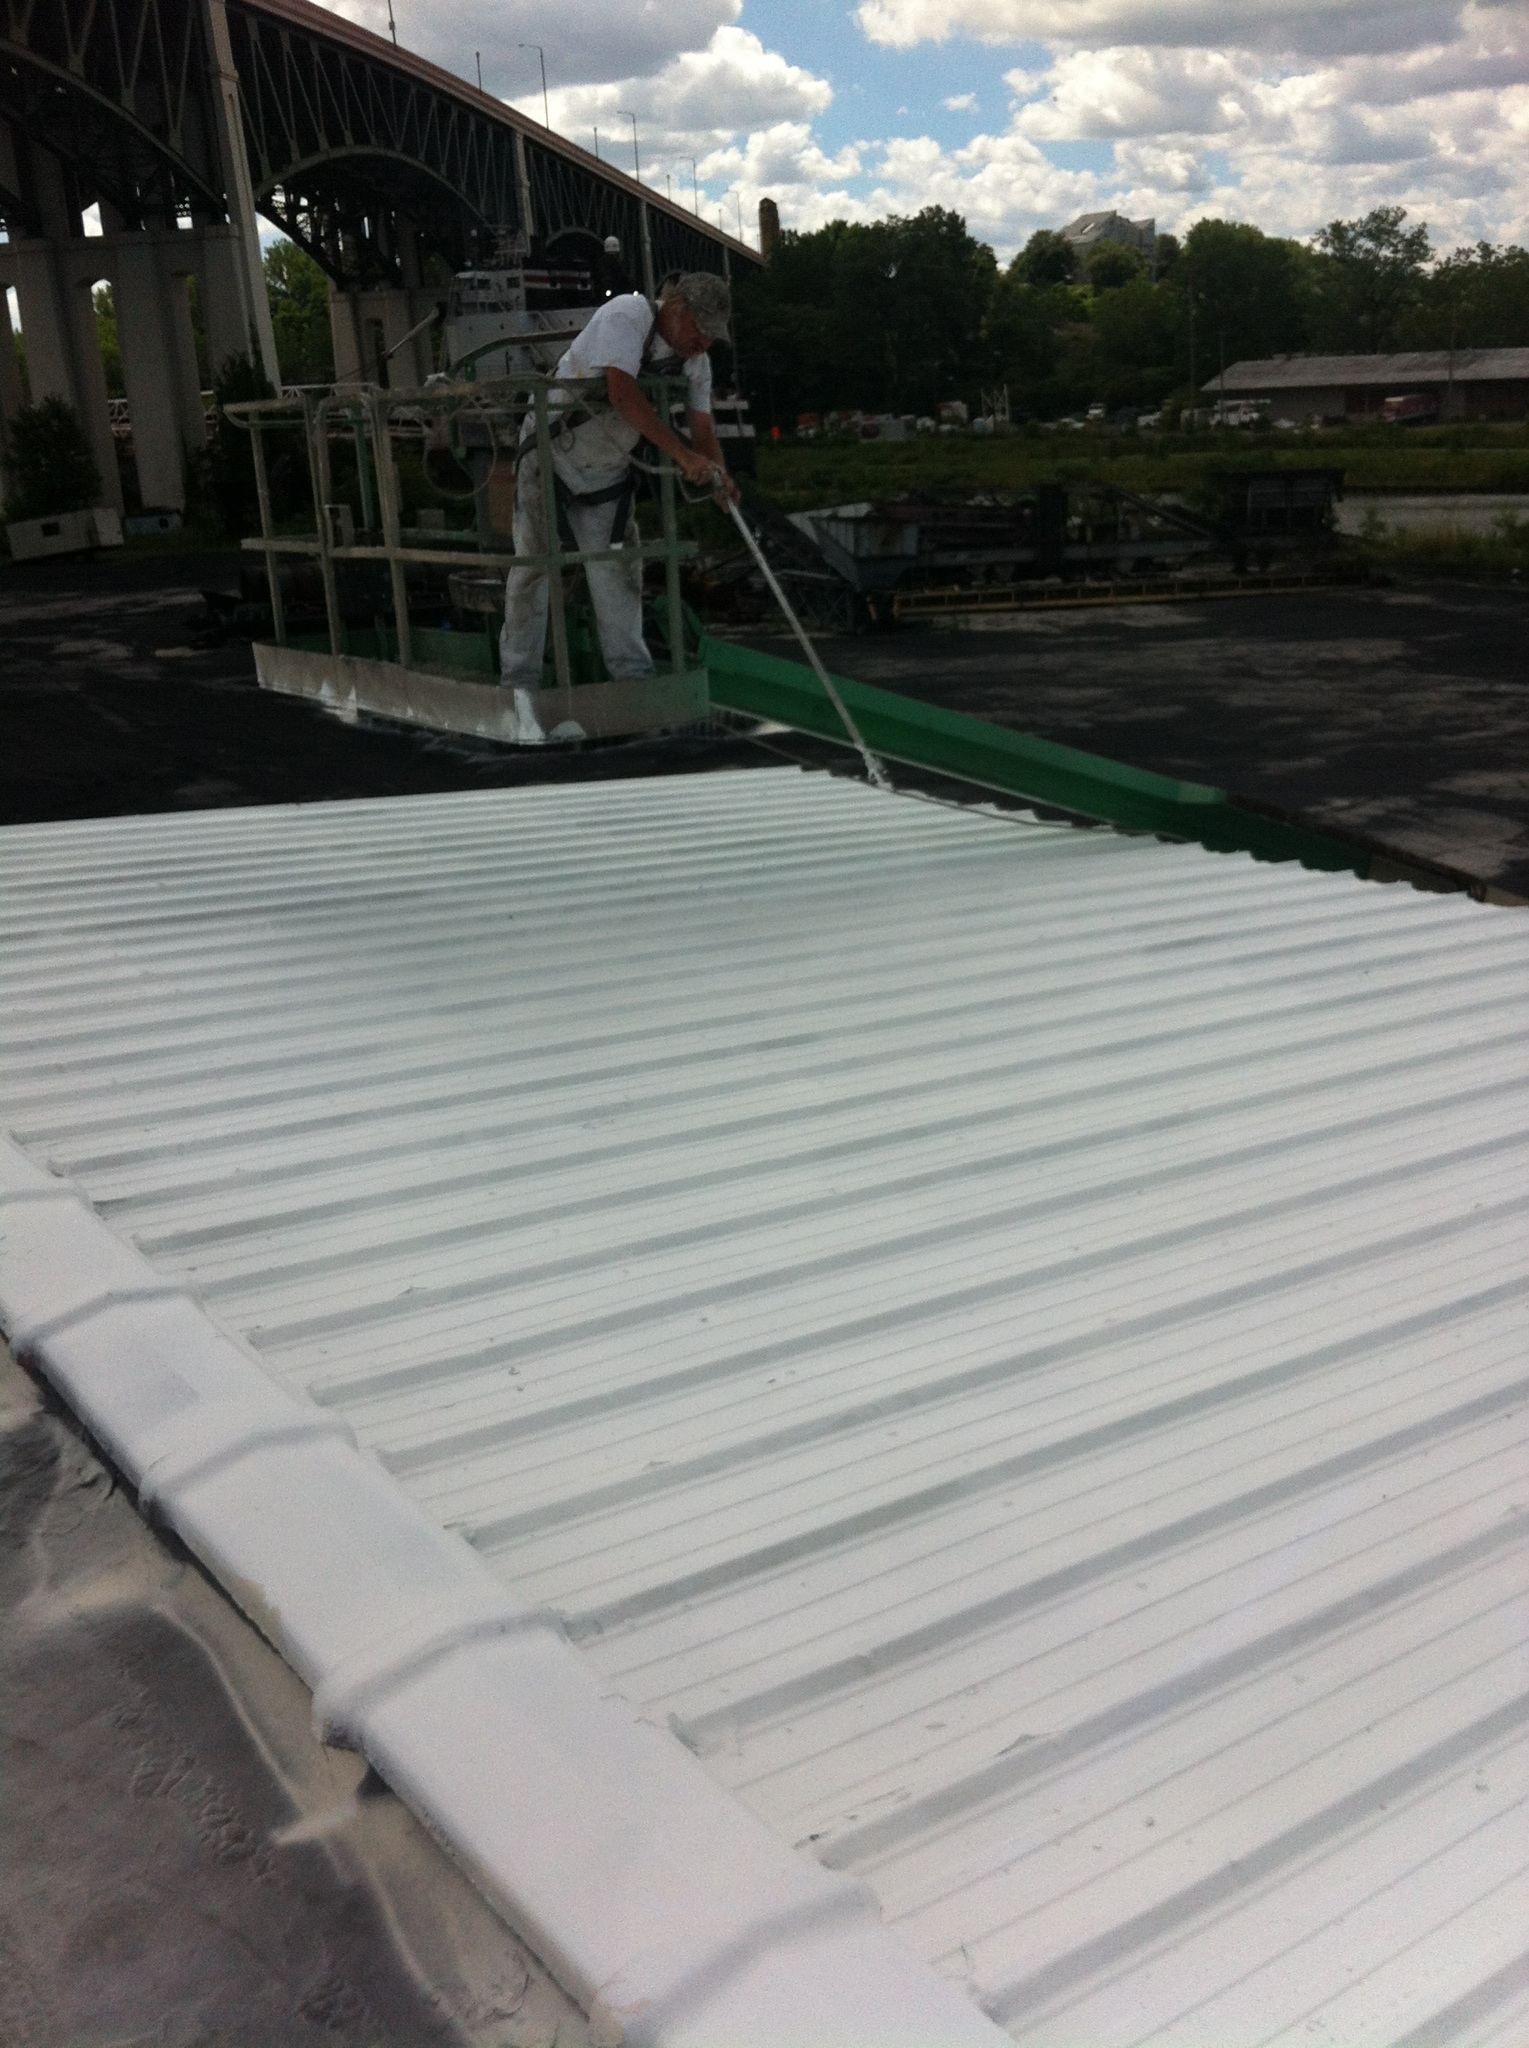 Application of Uniflex coating to metal roof at Mid Continent Coke in the flats.jpg